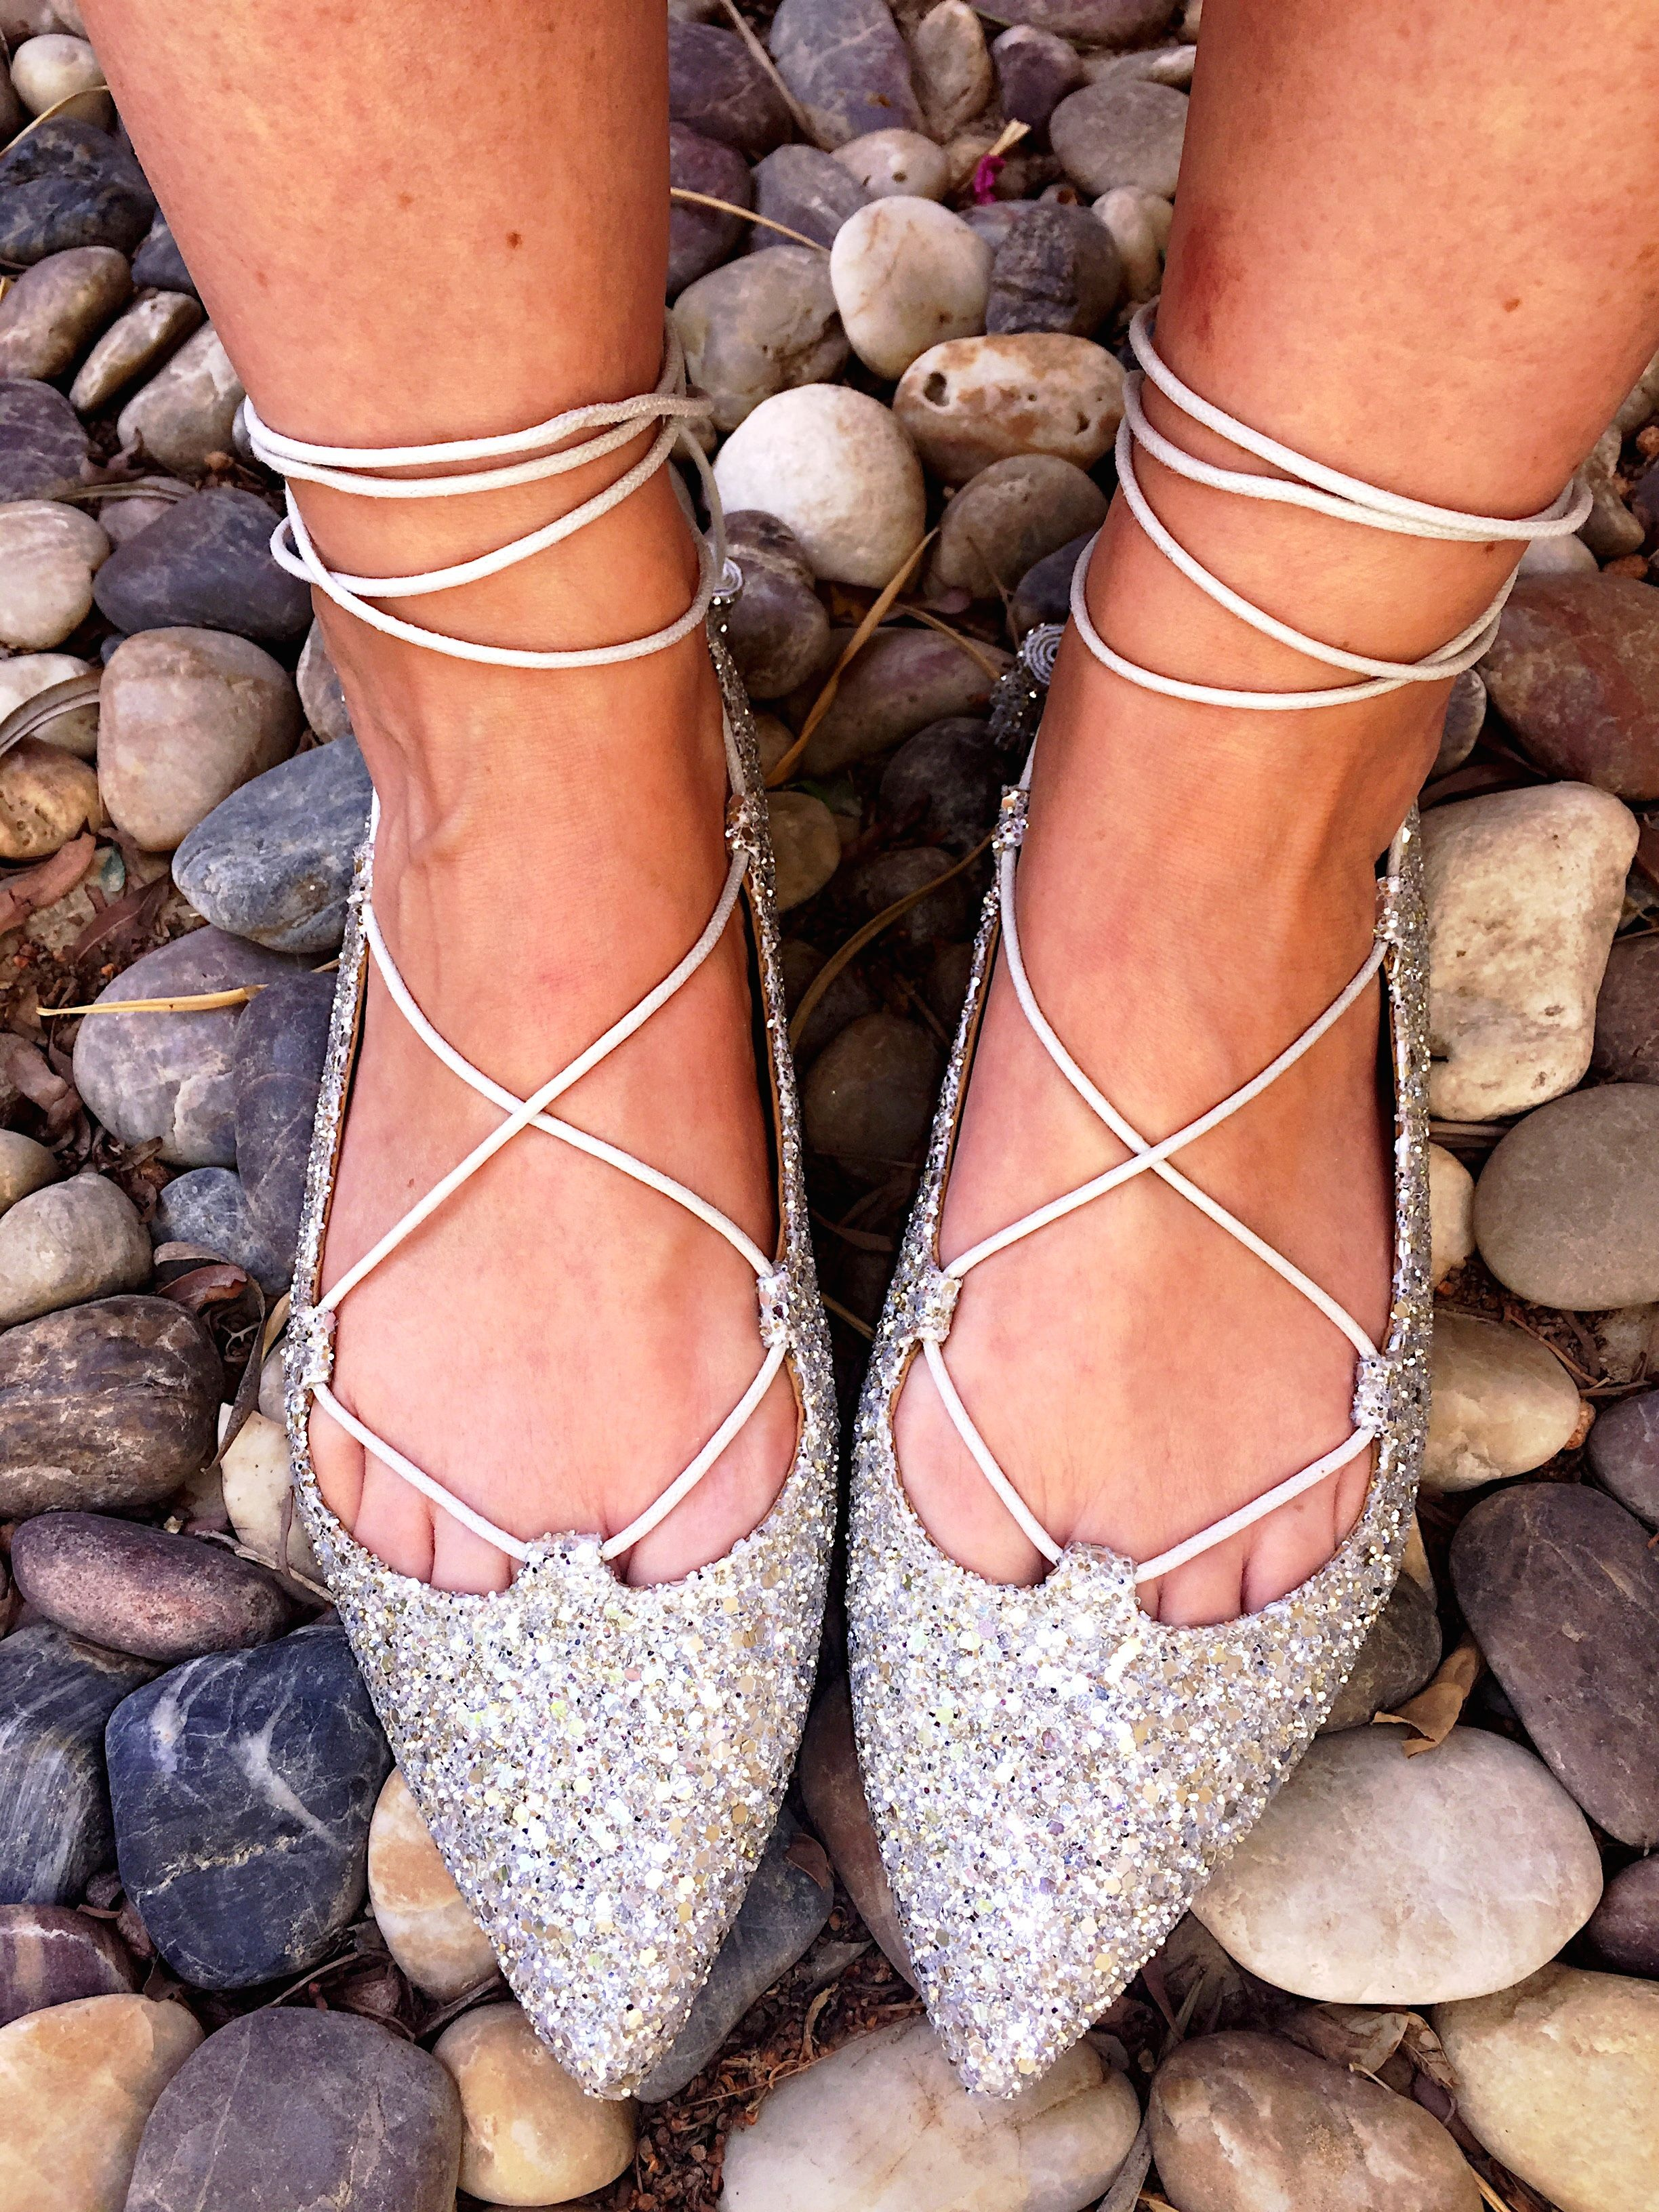 e31a8ba74 Office-laceup-shoes-flats-trend-glitter-silver-comfy-blog-post-online  shopping-sparkly-laces-gingham and sparkle-dubai-ireland